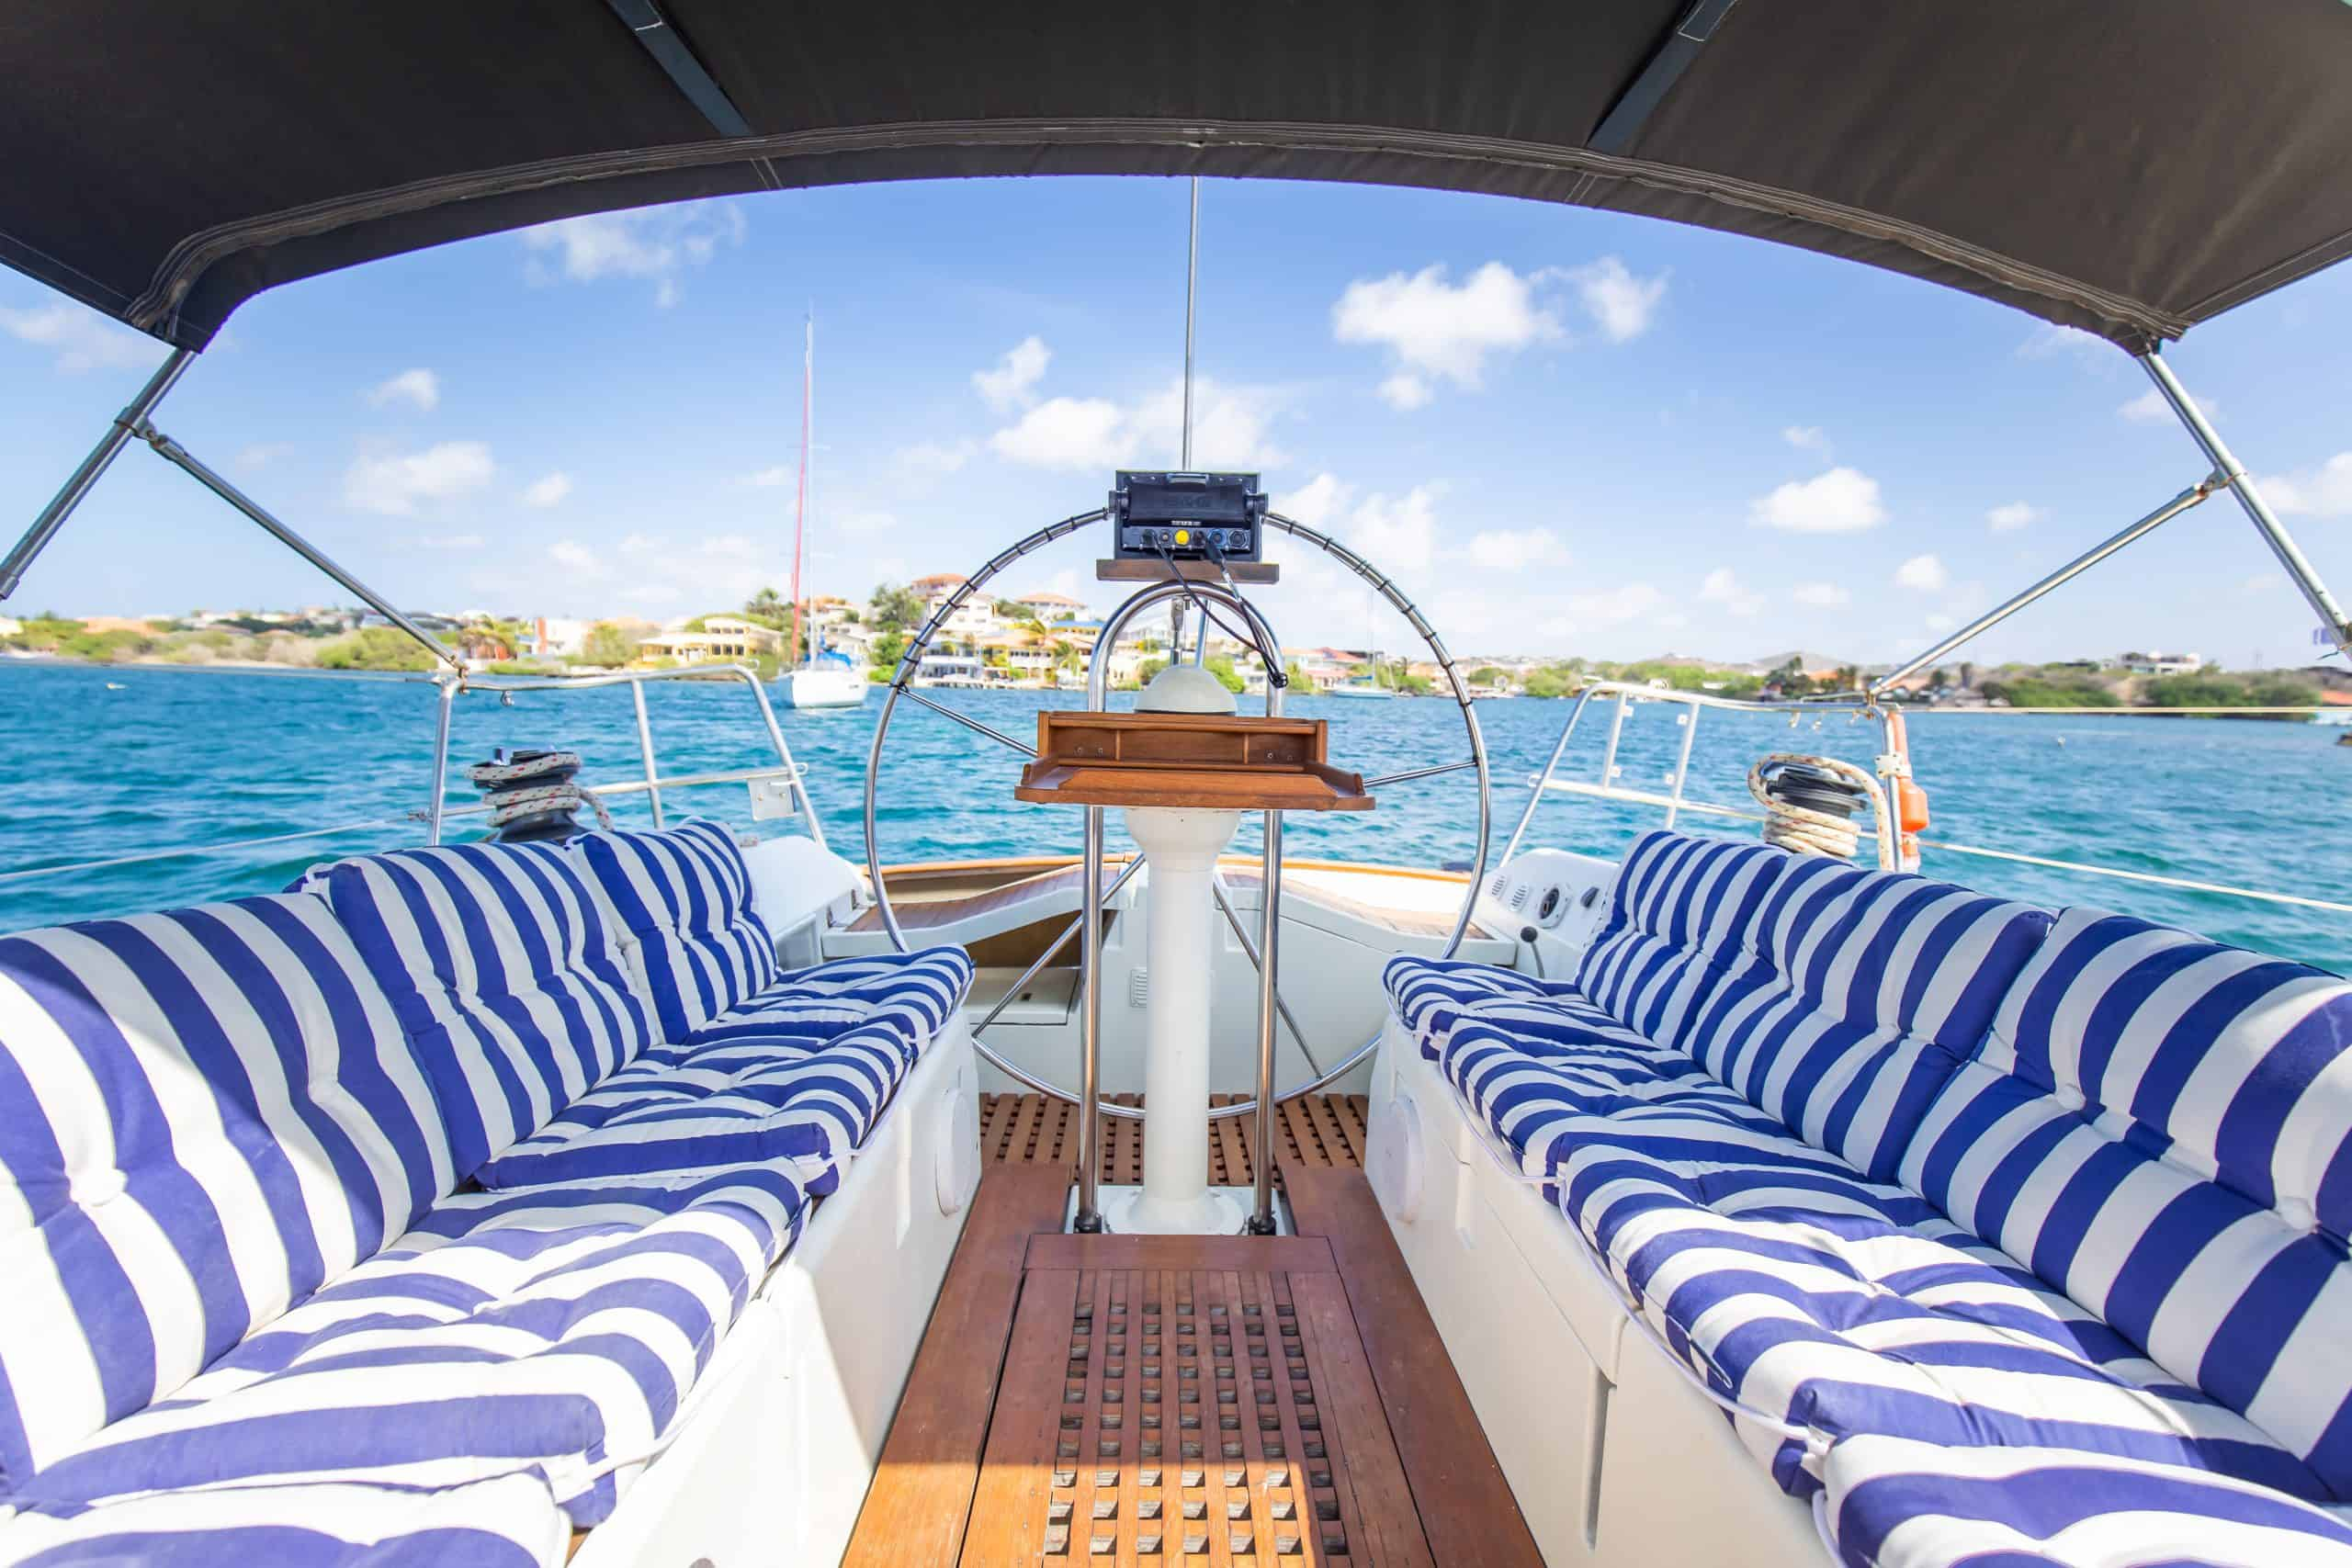 Maxie Sailing Curacao private charter curacao front to back Galaxie